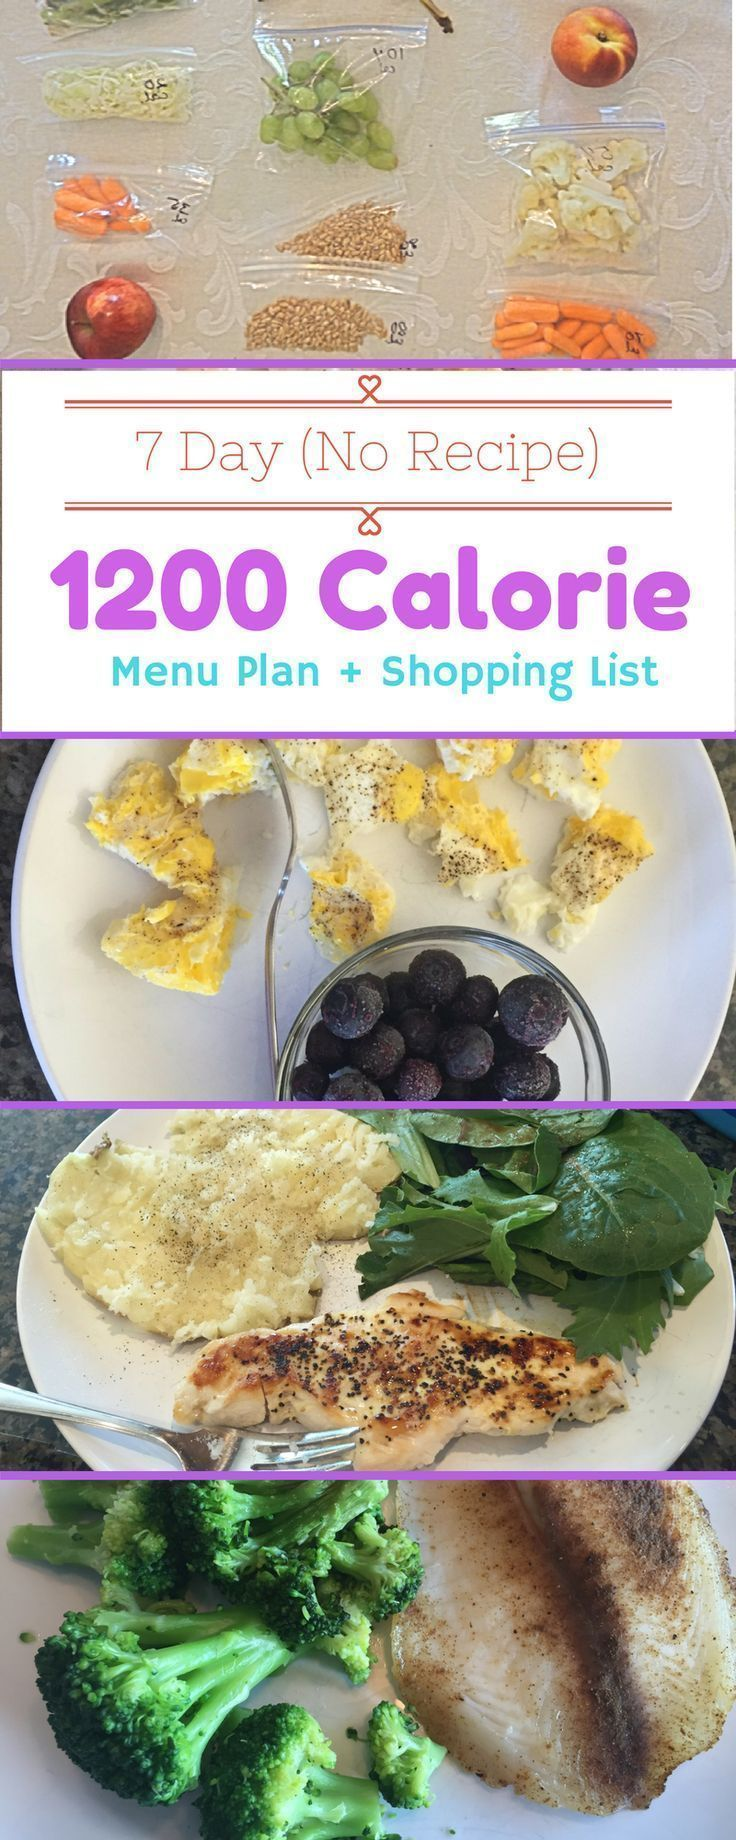 7 Day Weight Loss Menu Plan to help you get Healthier within the next week.  No …